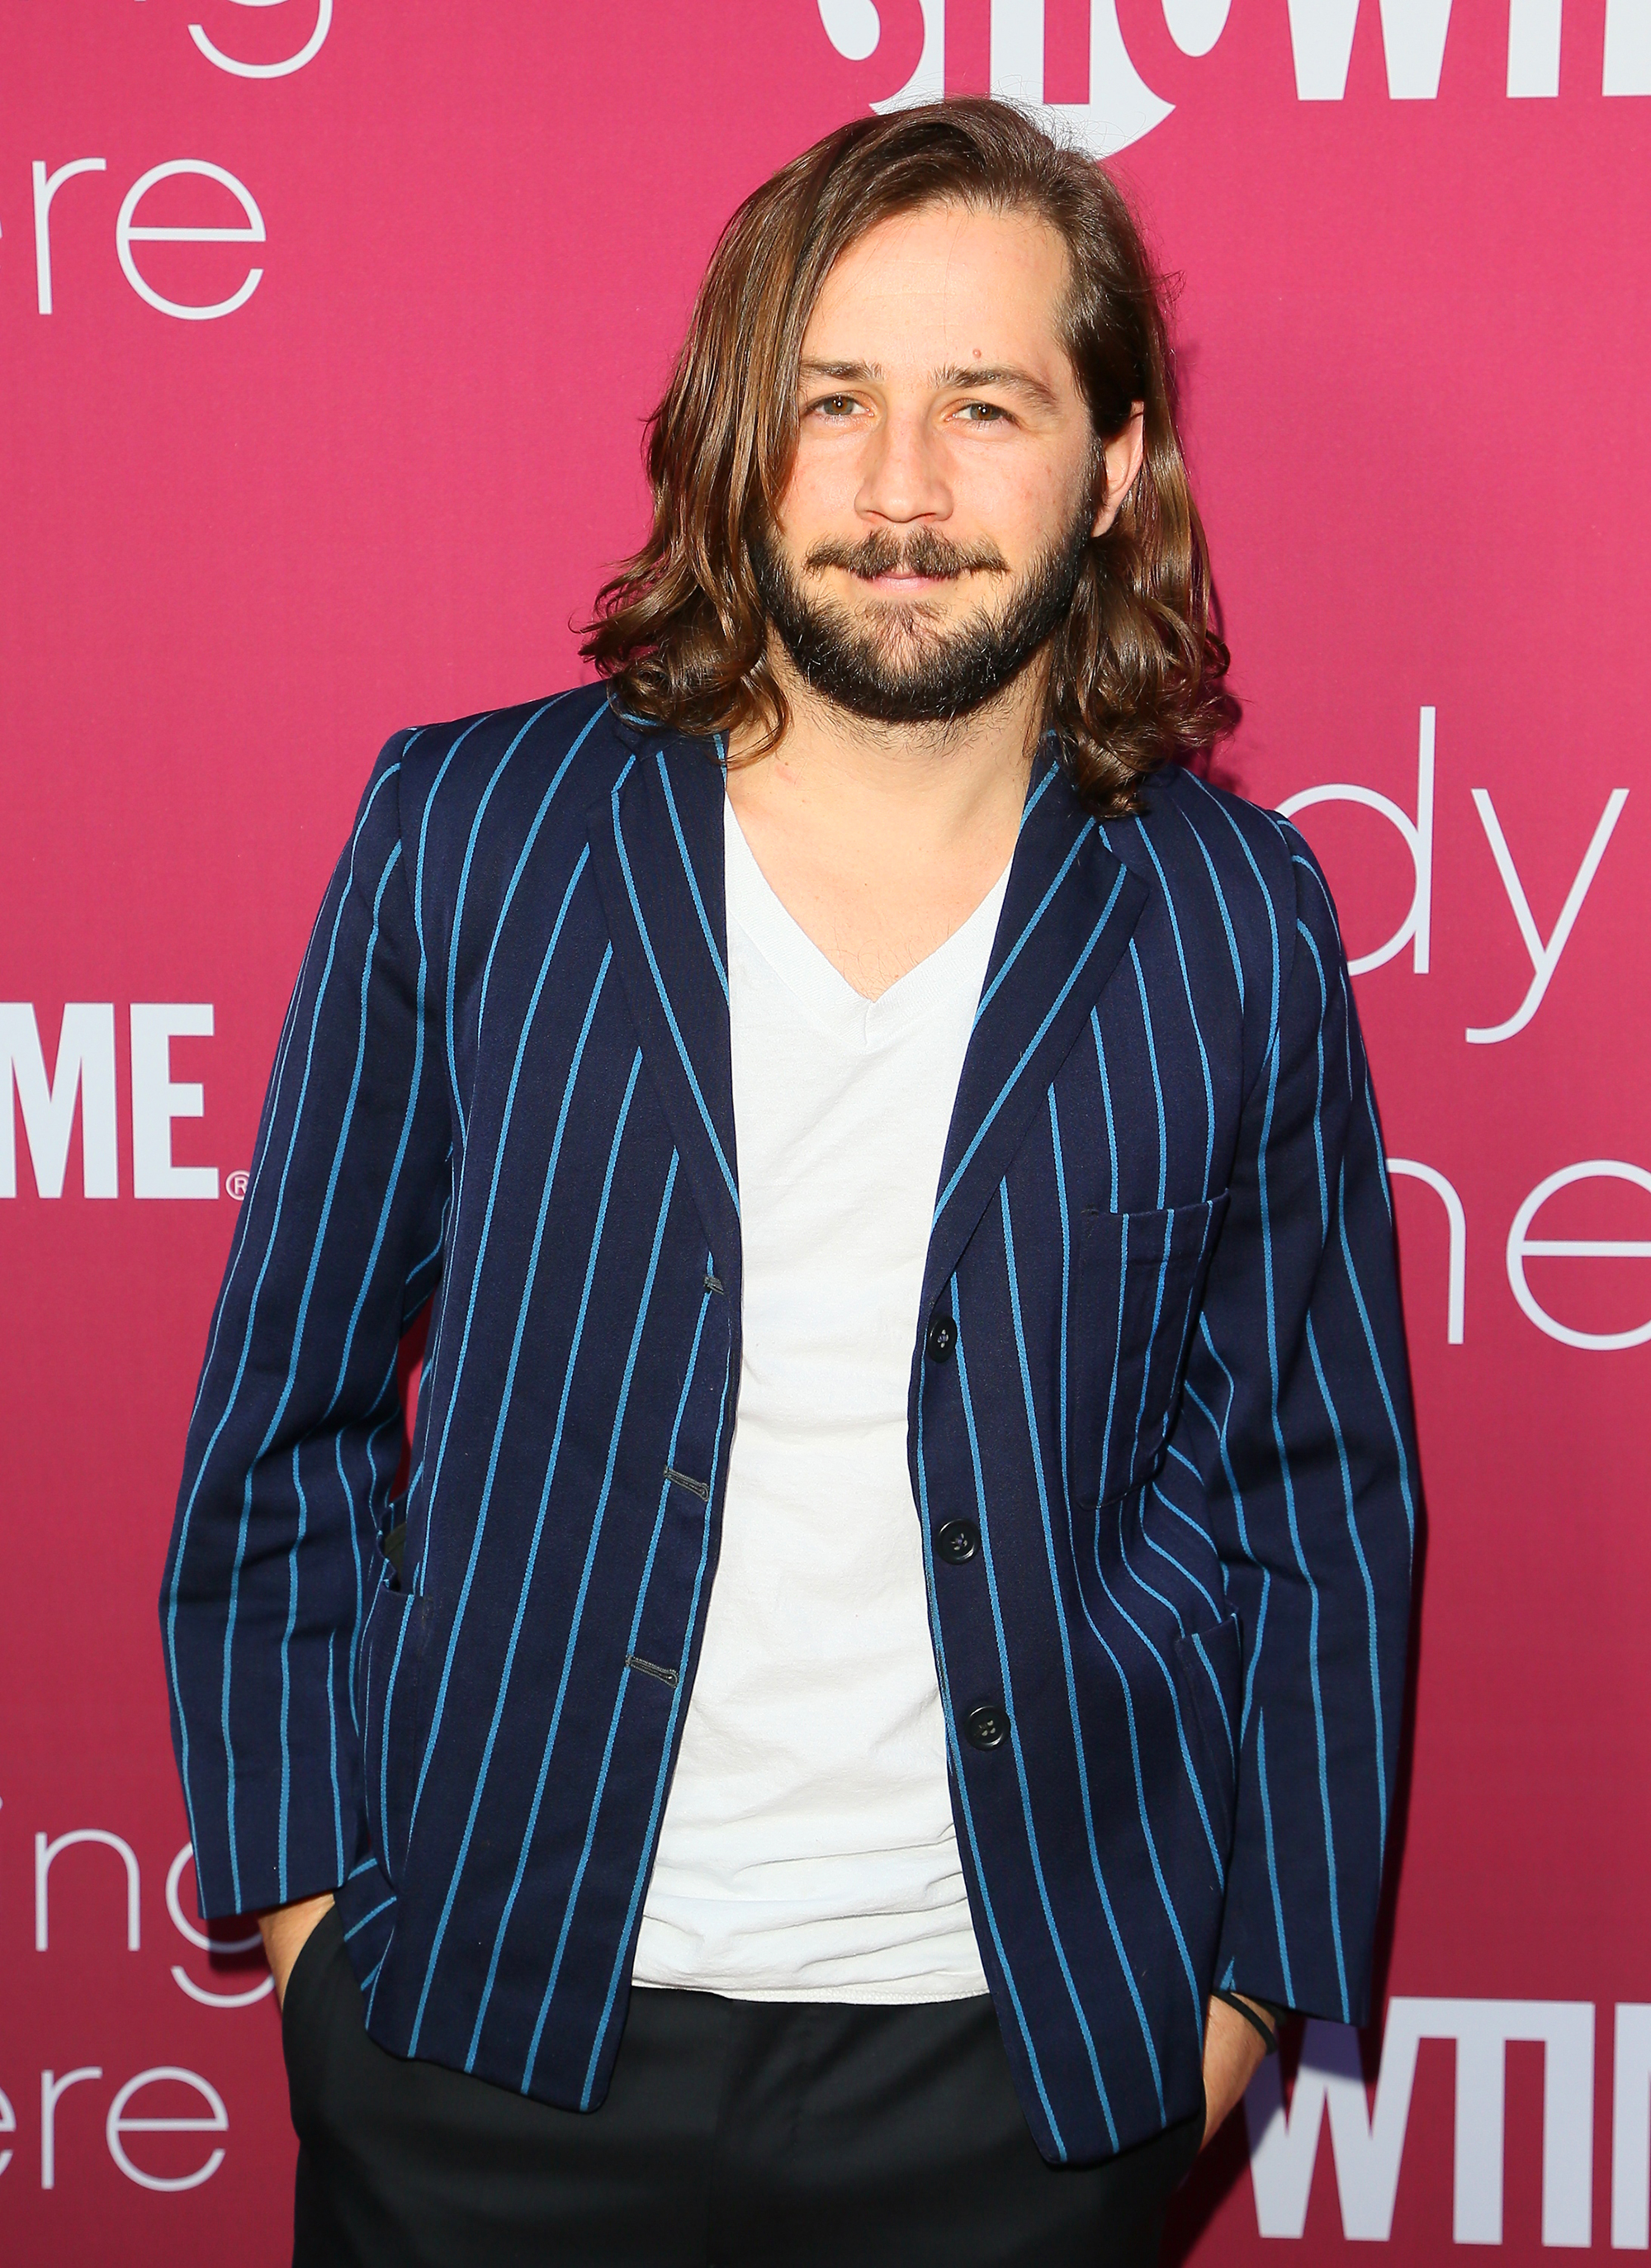 The Stars Joining Fall TV - Talk about the pressure of playing Jack Pearson's brother! That's what Michael Angarano is stepping into on NBC's This Is Us , as The Knick alum joined season 3.